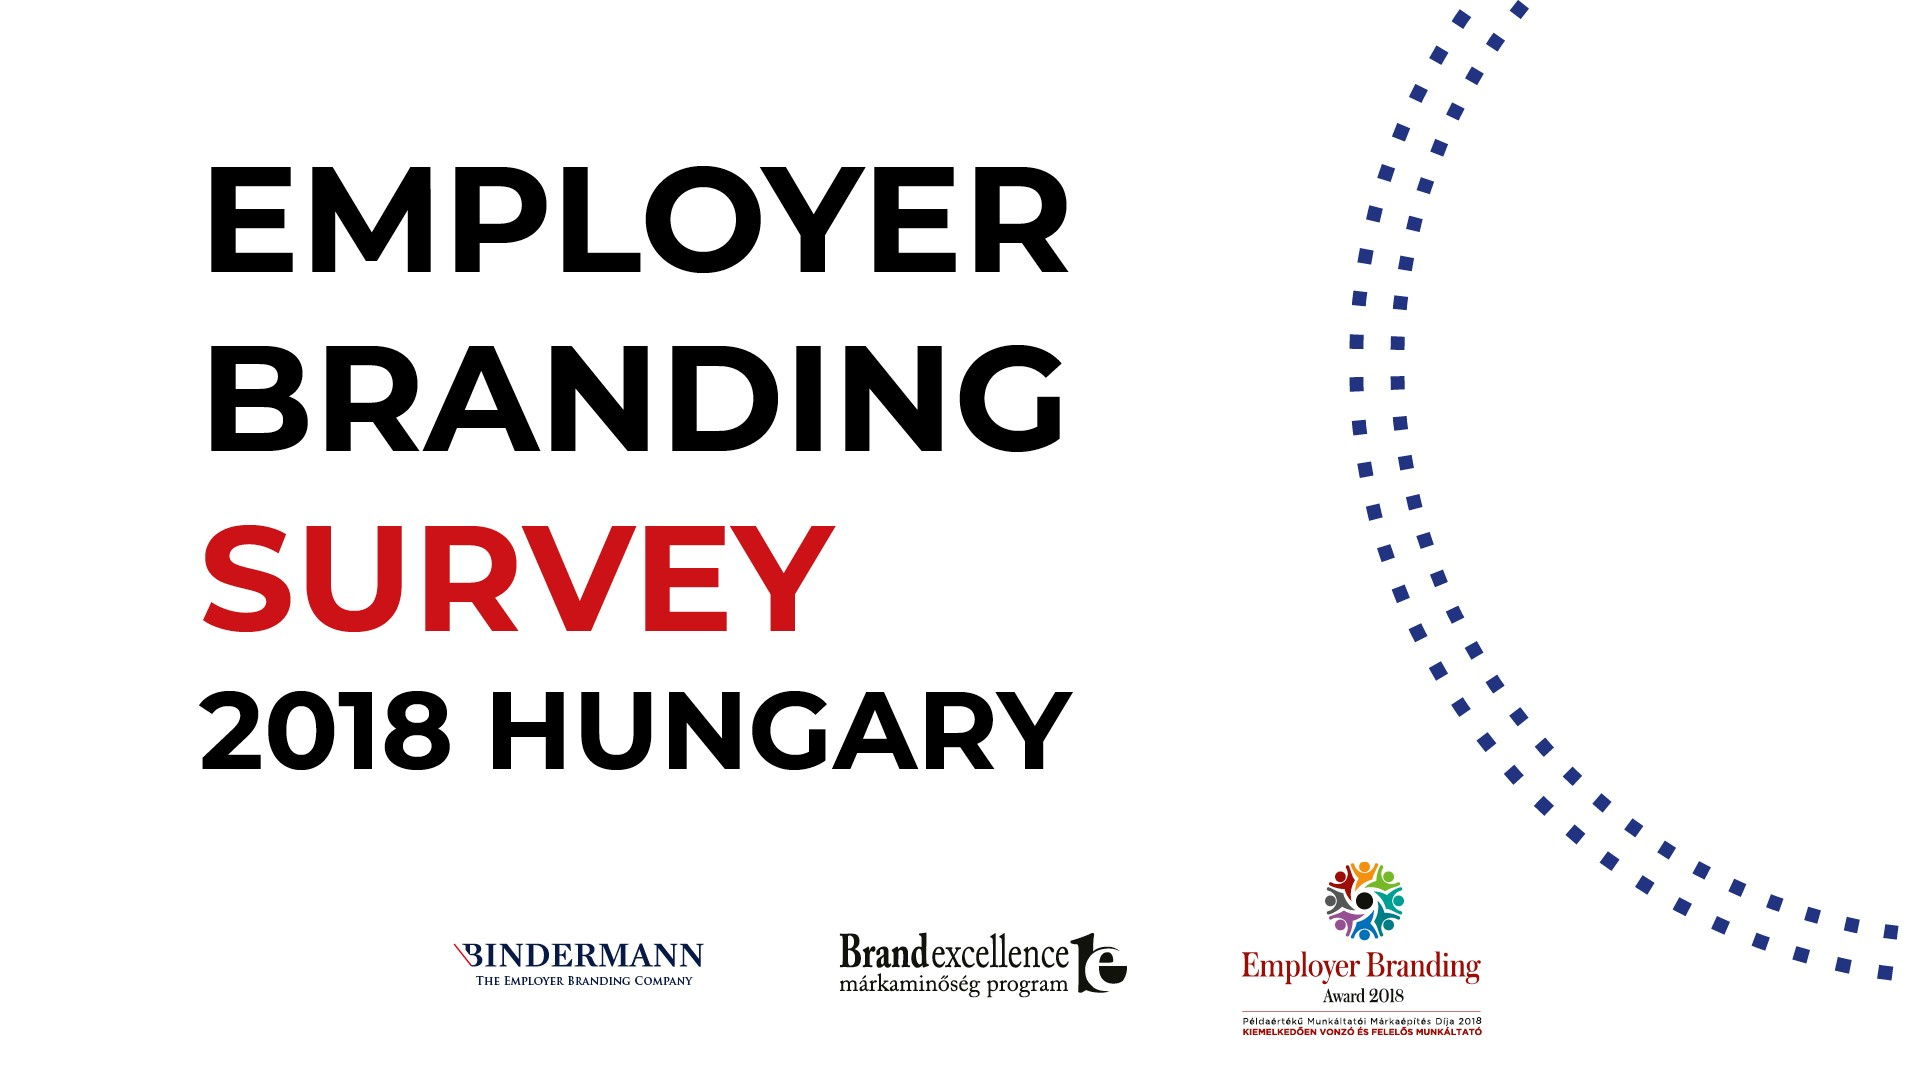 Employer Branding Survey 2018 Hungary